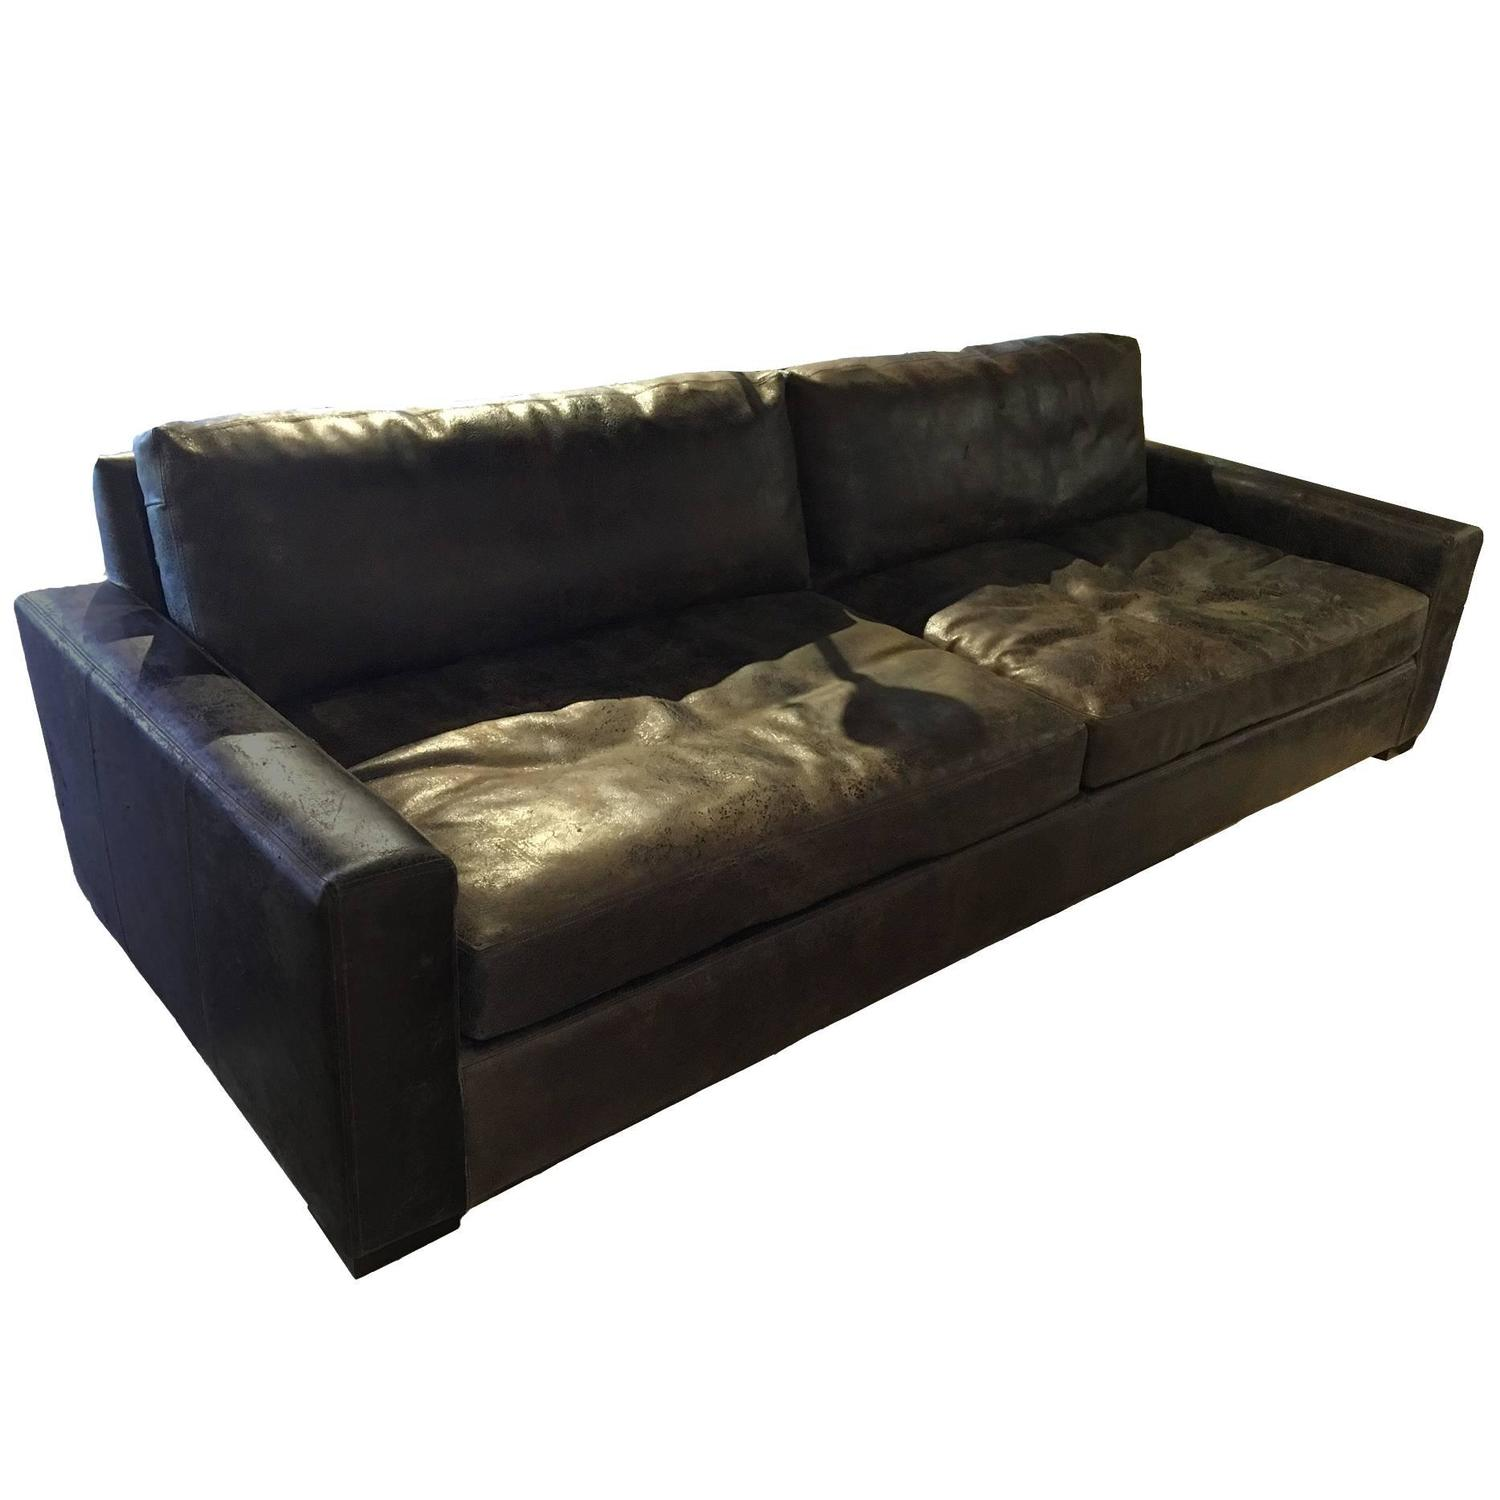 Oversized distressed leather sofa for sale at 1stdibs for Leather sofas for sale